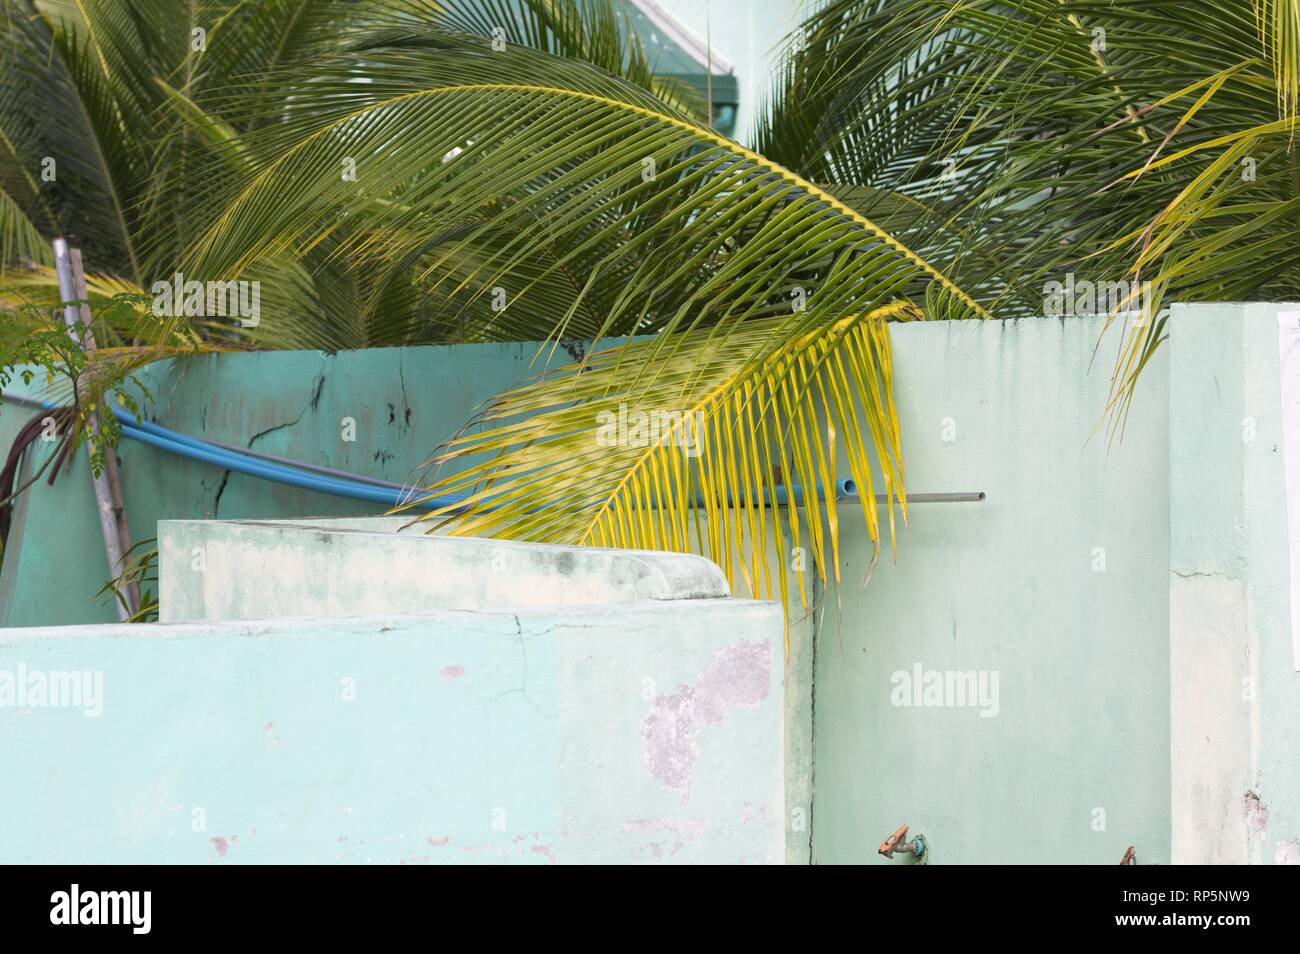 A palm tree over a white wall in a maldivian village (Ari Atoll, Maldives) - Stock Image